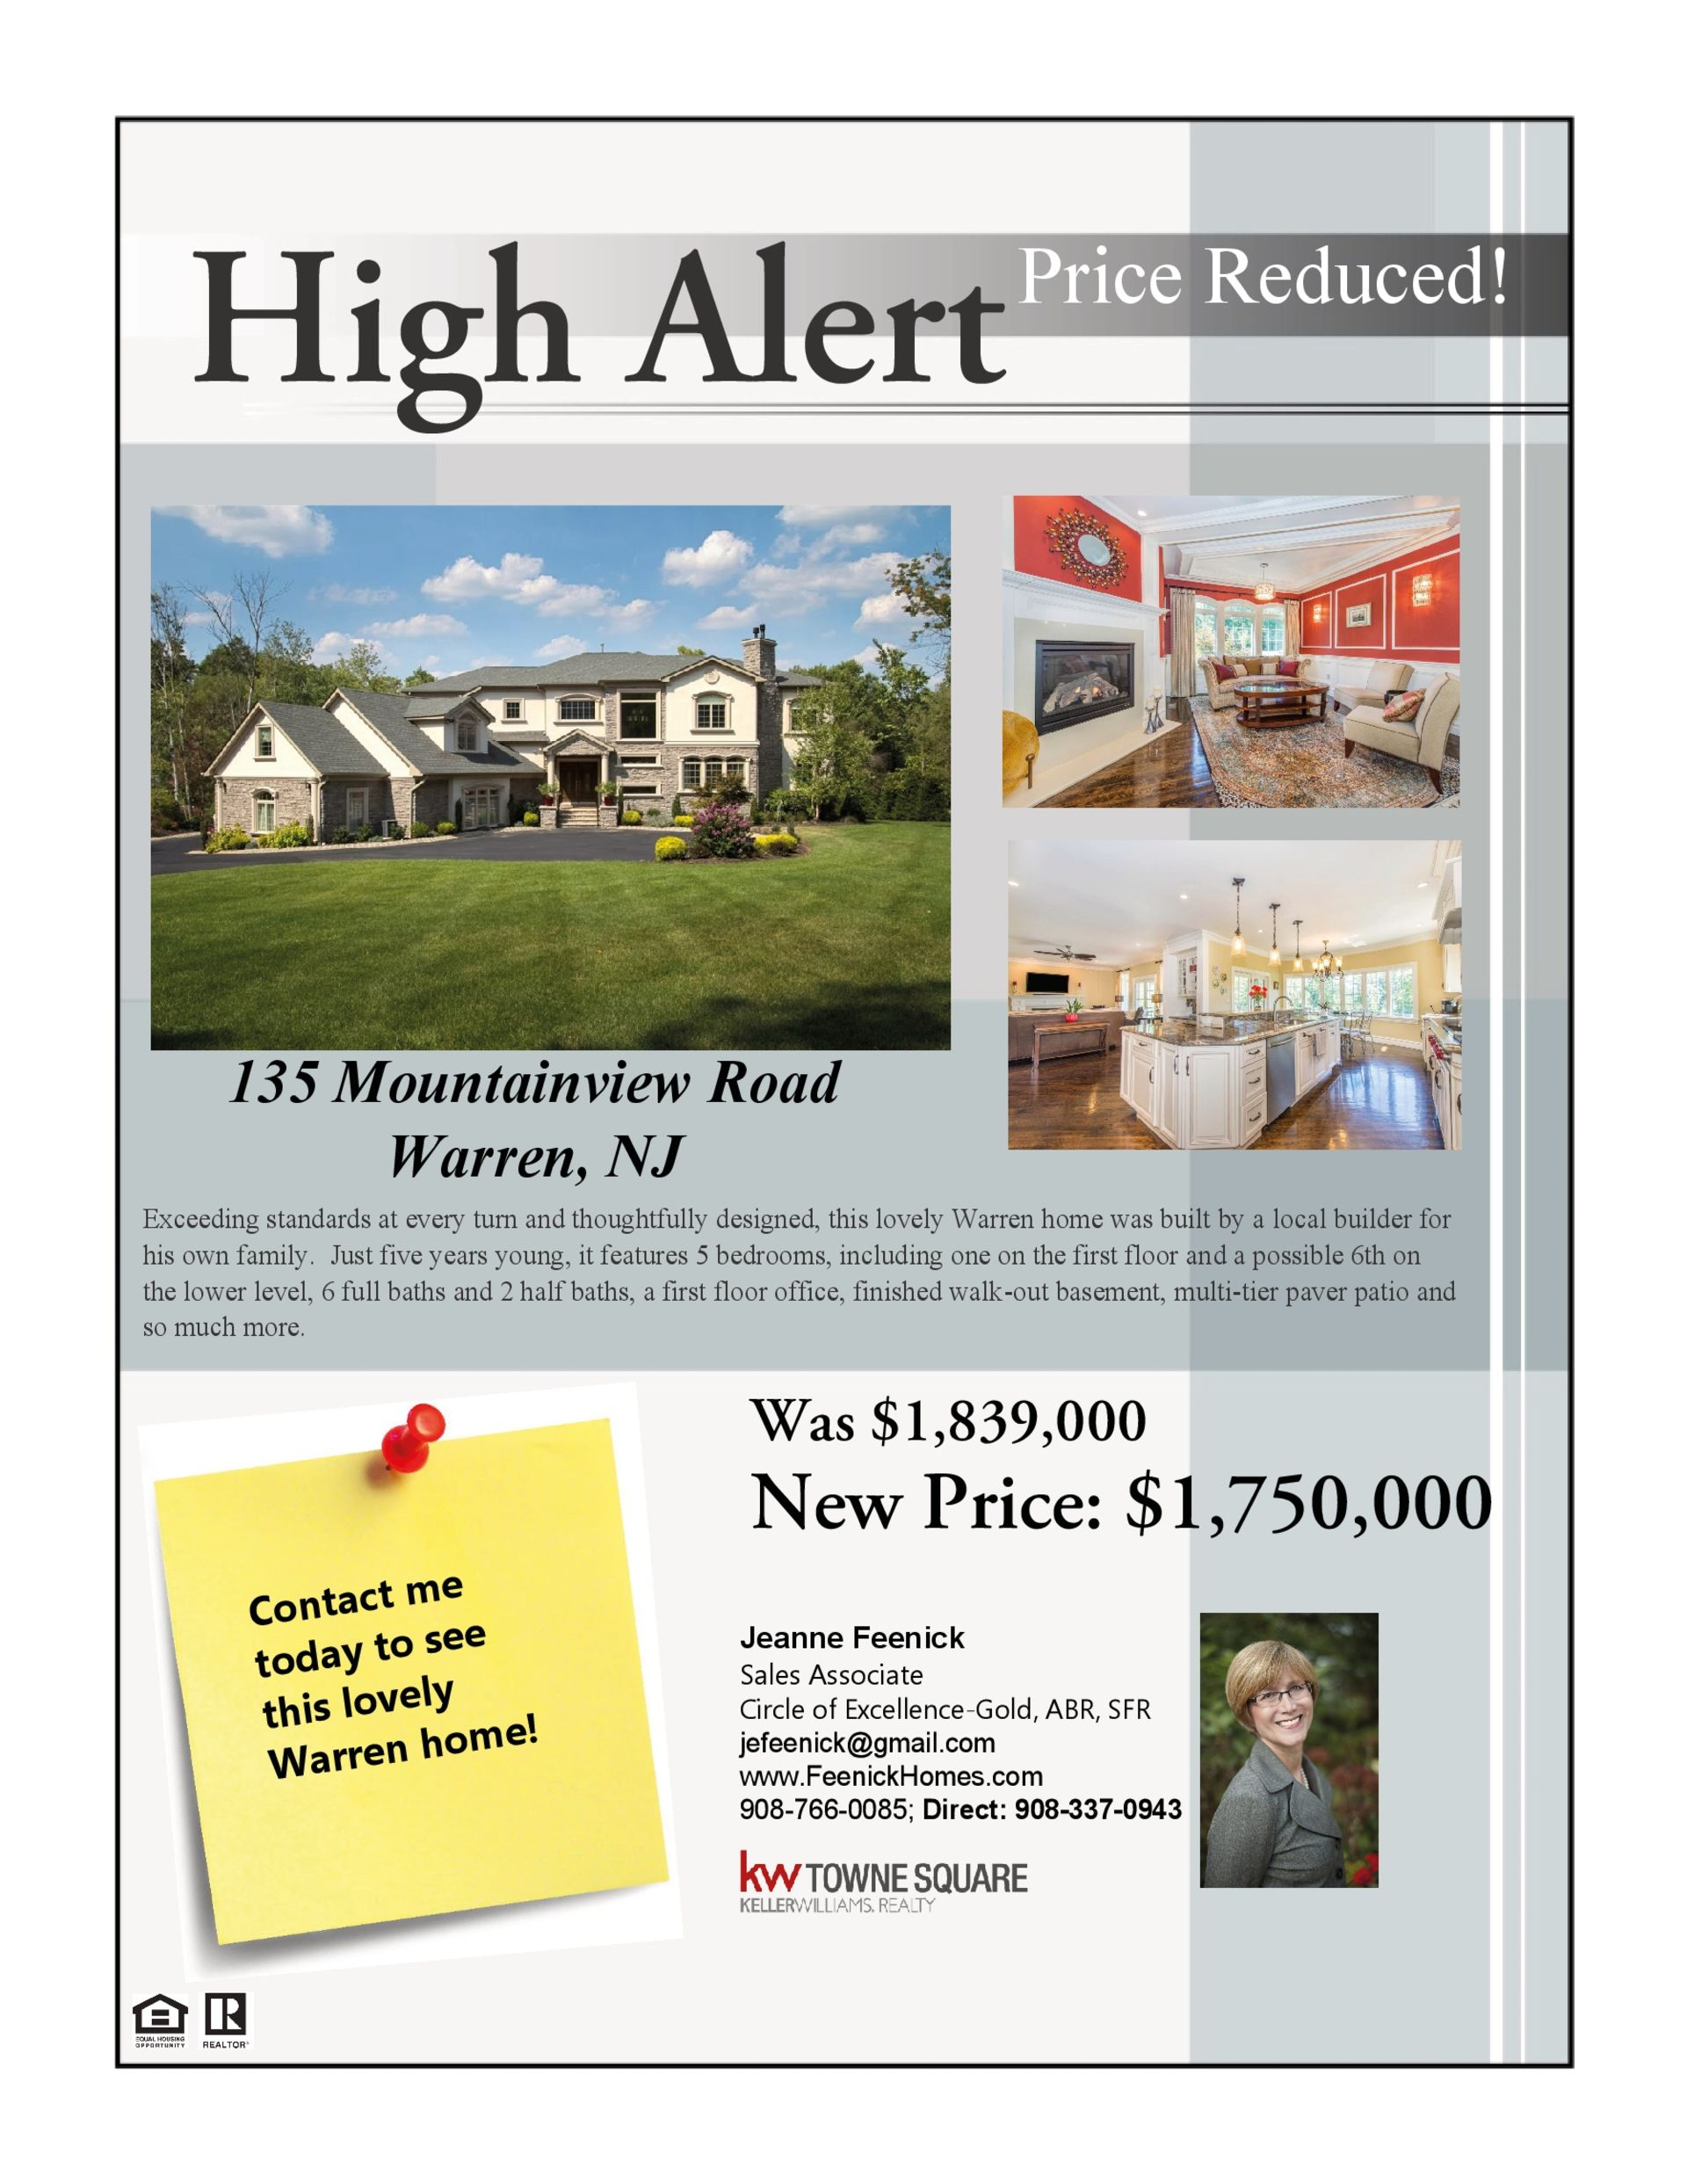 Price reduced on luxury Warren, NJ home – 135 Mountainview Road